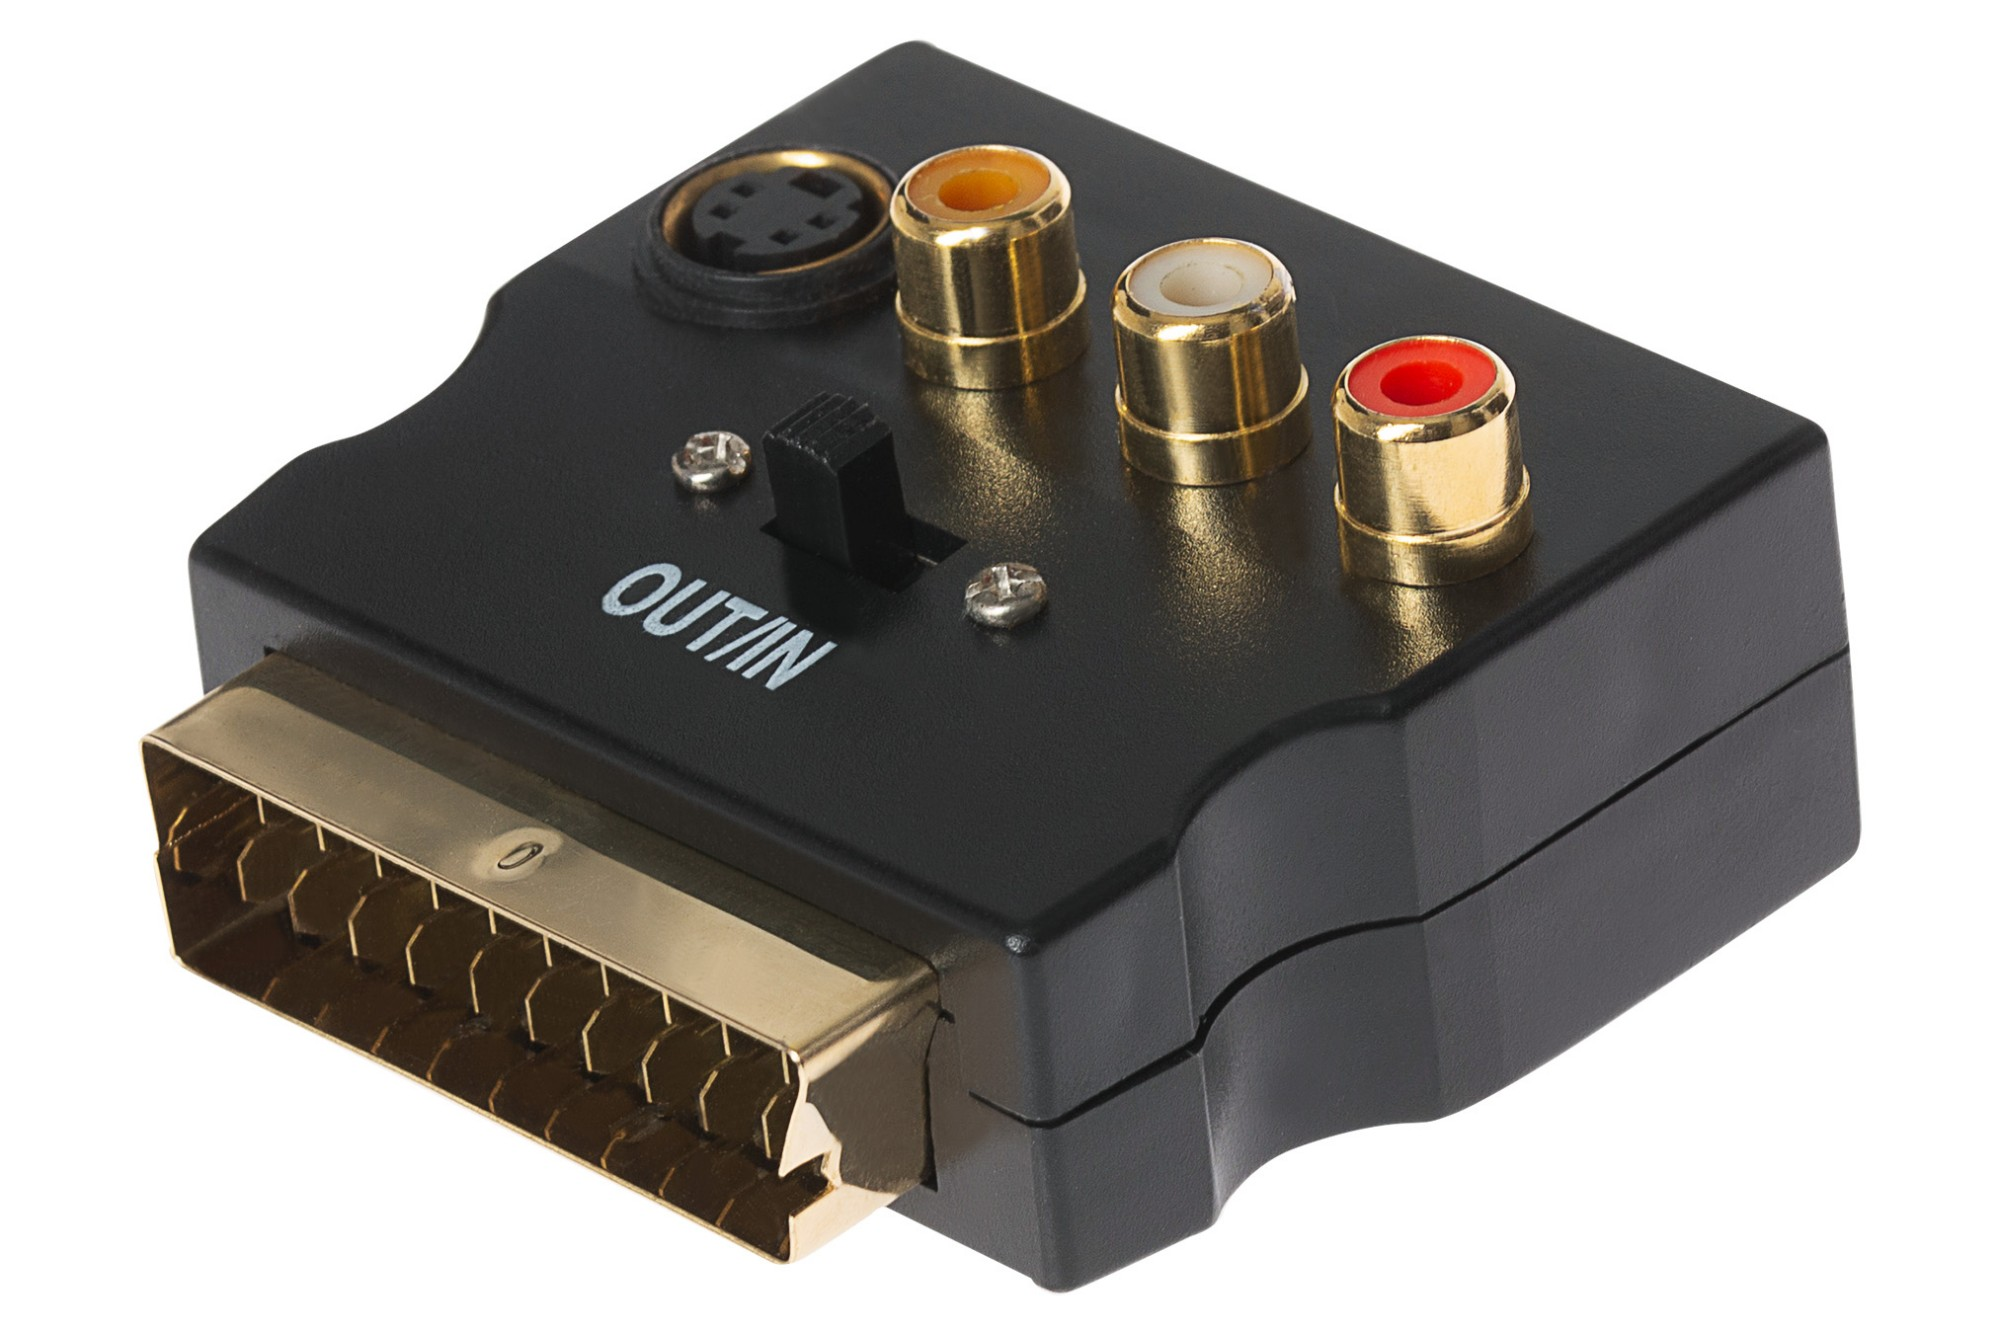 MAPLIN SCART to S-Video or Triple RCA Adapter